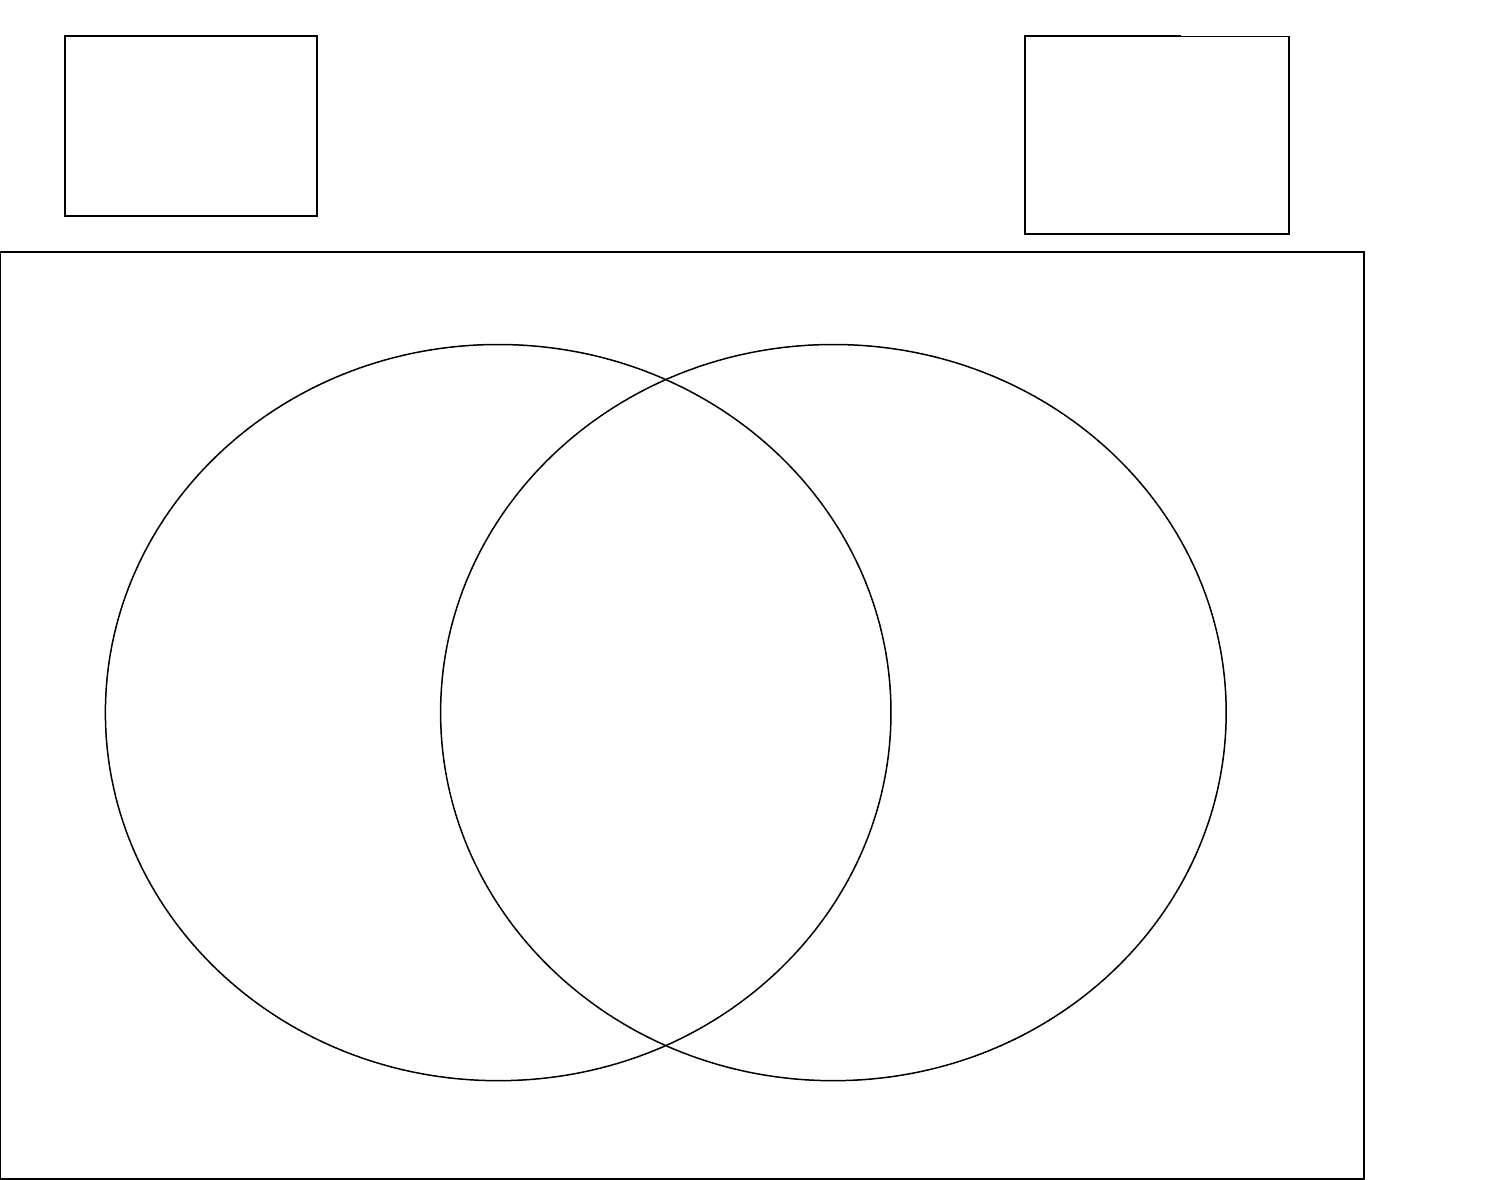 Venn Diagram Template In Word And Pdf Formats